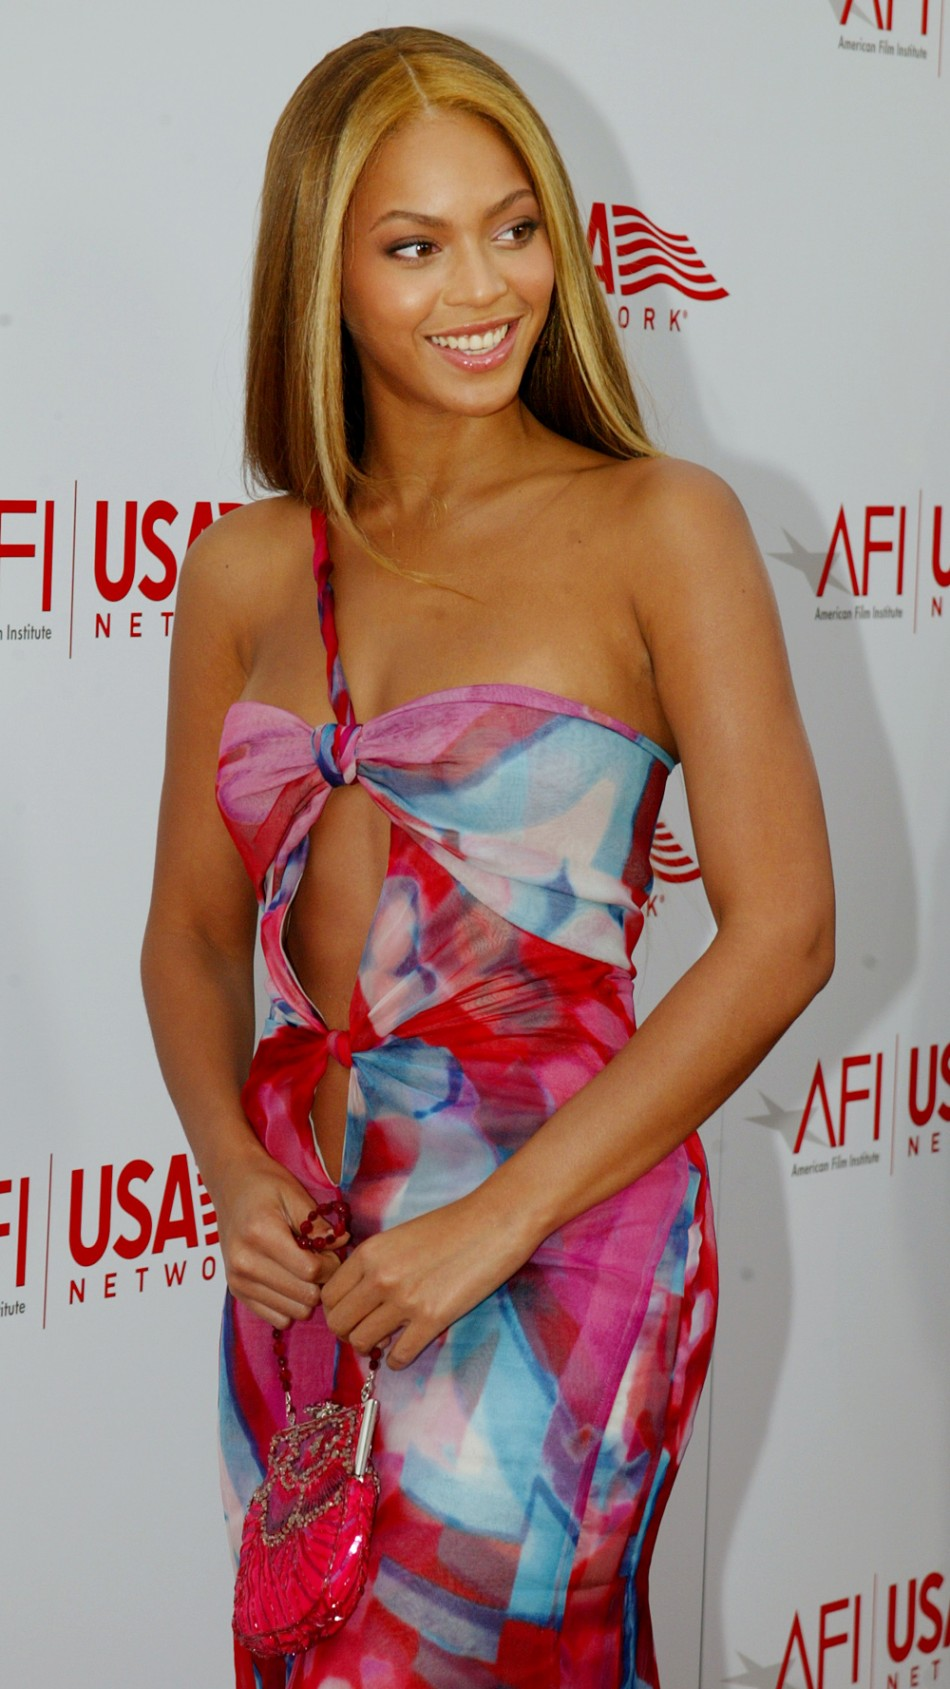 SINGER BEYONCE KNOWLES ARRIVES FOR AFI LIFE ACHIEVEMENT AWARD DINNER.